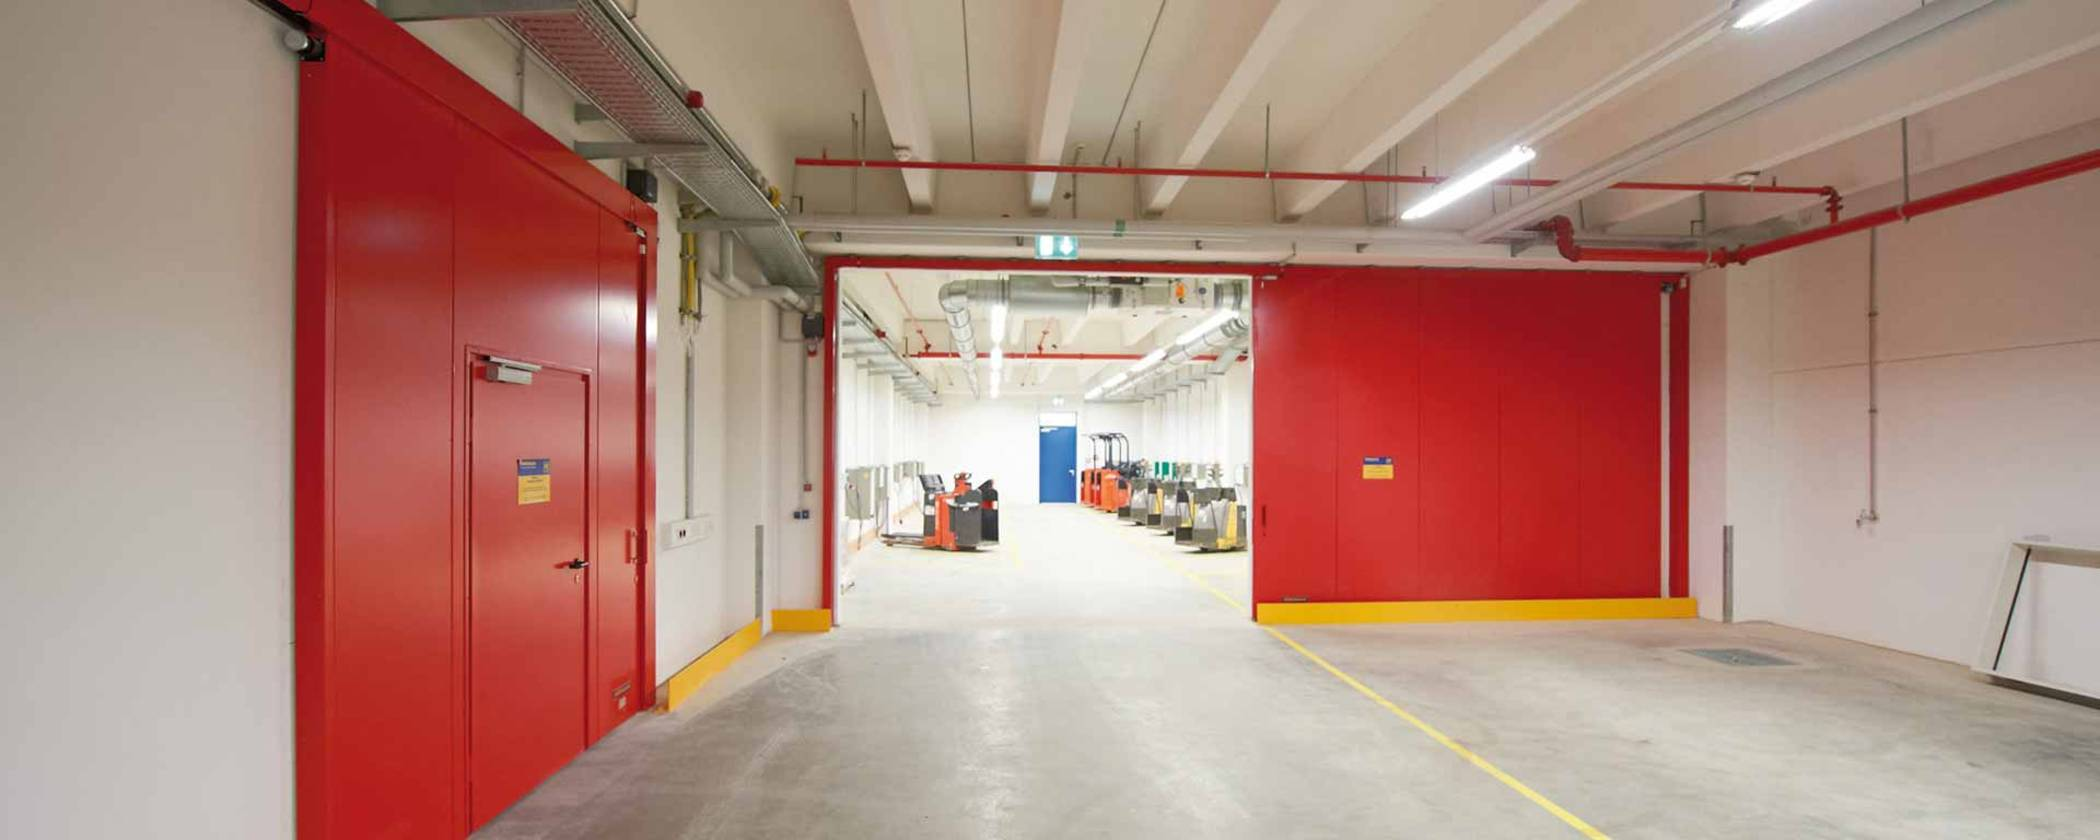 Global Industrial Sliding Doors Market 2018 Growth Size Latest